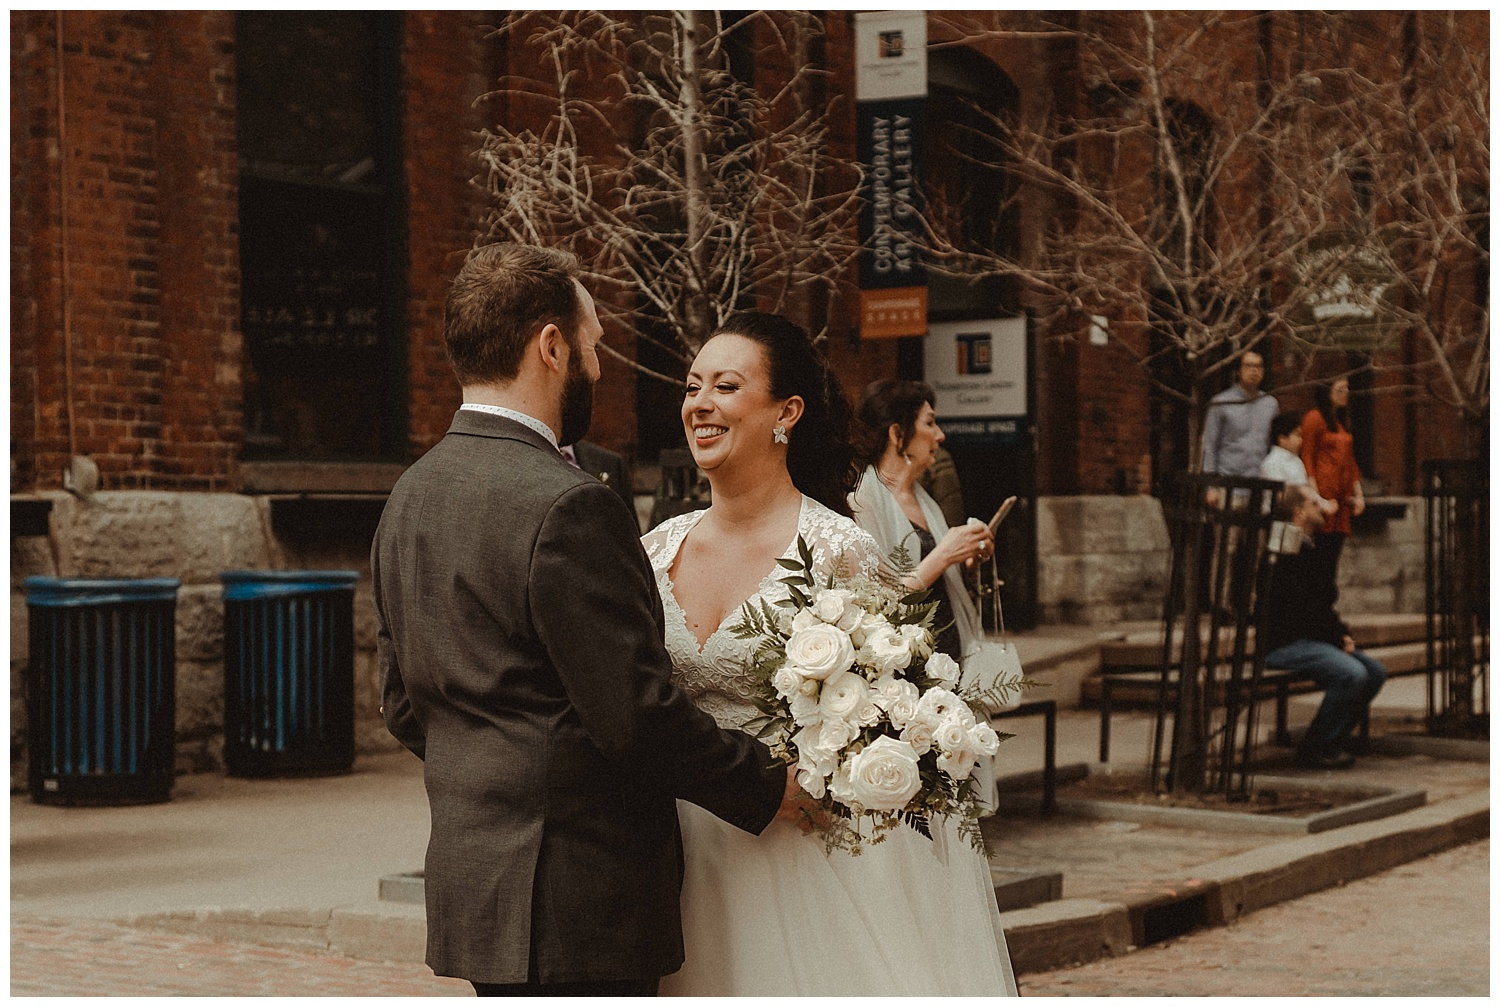 Katie Marie Photography | Archeo Wedding Arta Gallery Wedding | Distillery District Wedding | Toronto Wedding Photographer | Hamilton Toronto Ontario Wedding Photographer |_0012.jpg